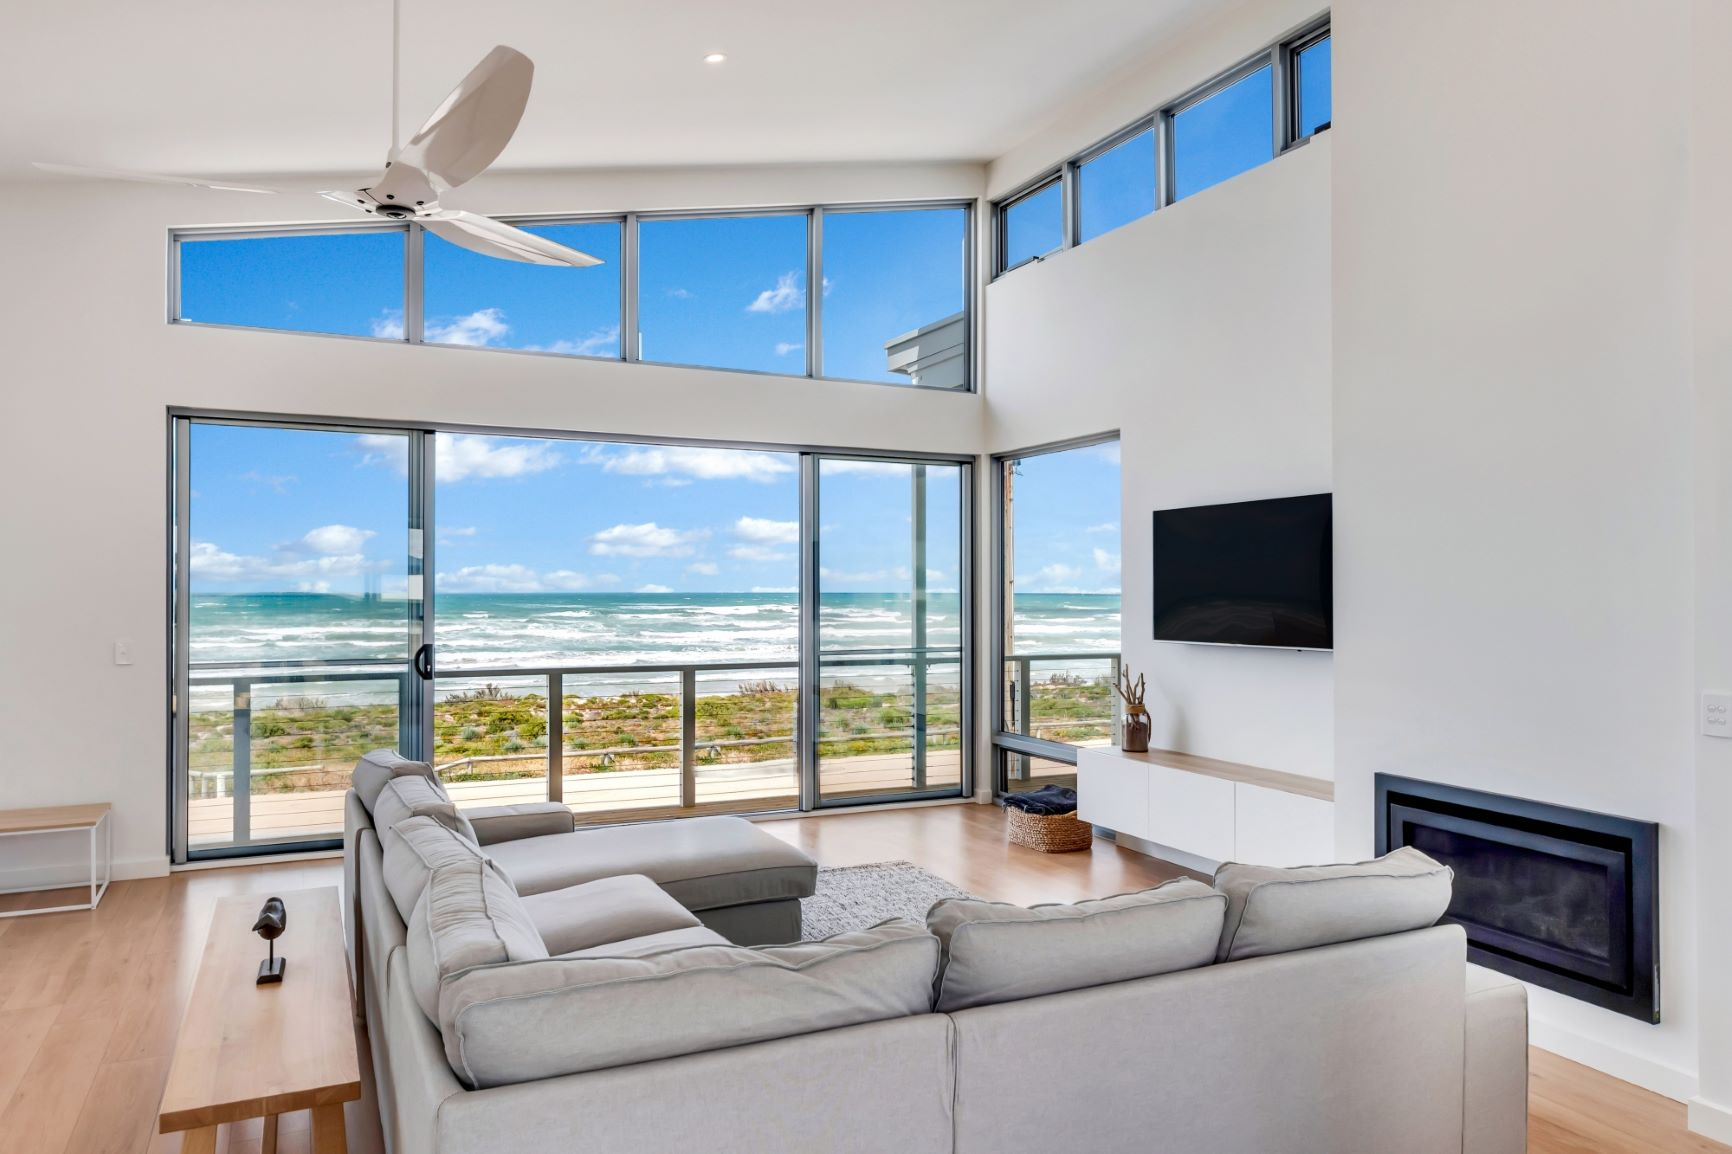 Award Winning, Custom Home, New Home, Two Storey, Builders, Design, Middleton SA, Fleurieu, Large Windows, Ocean View, Living Area, Fireplace